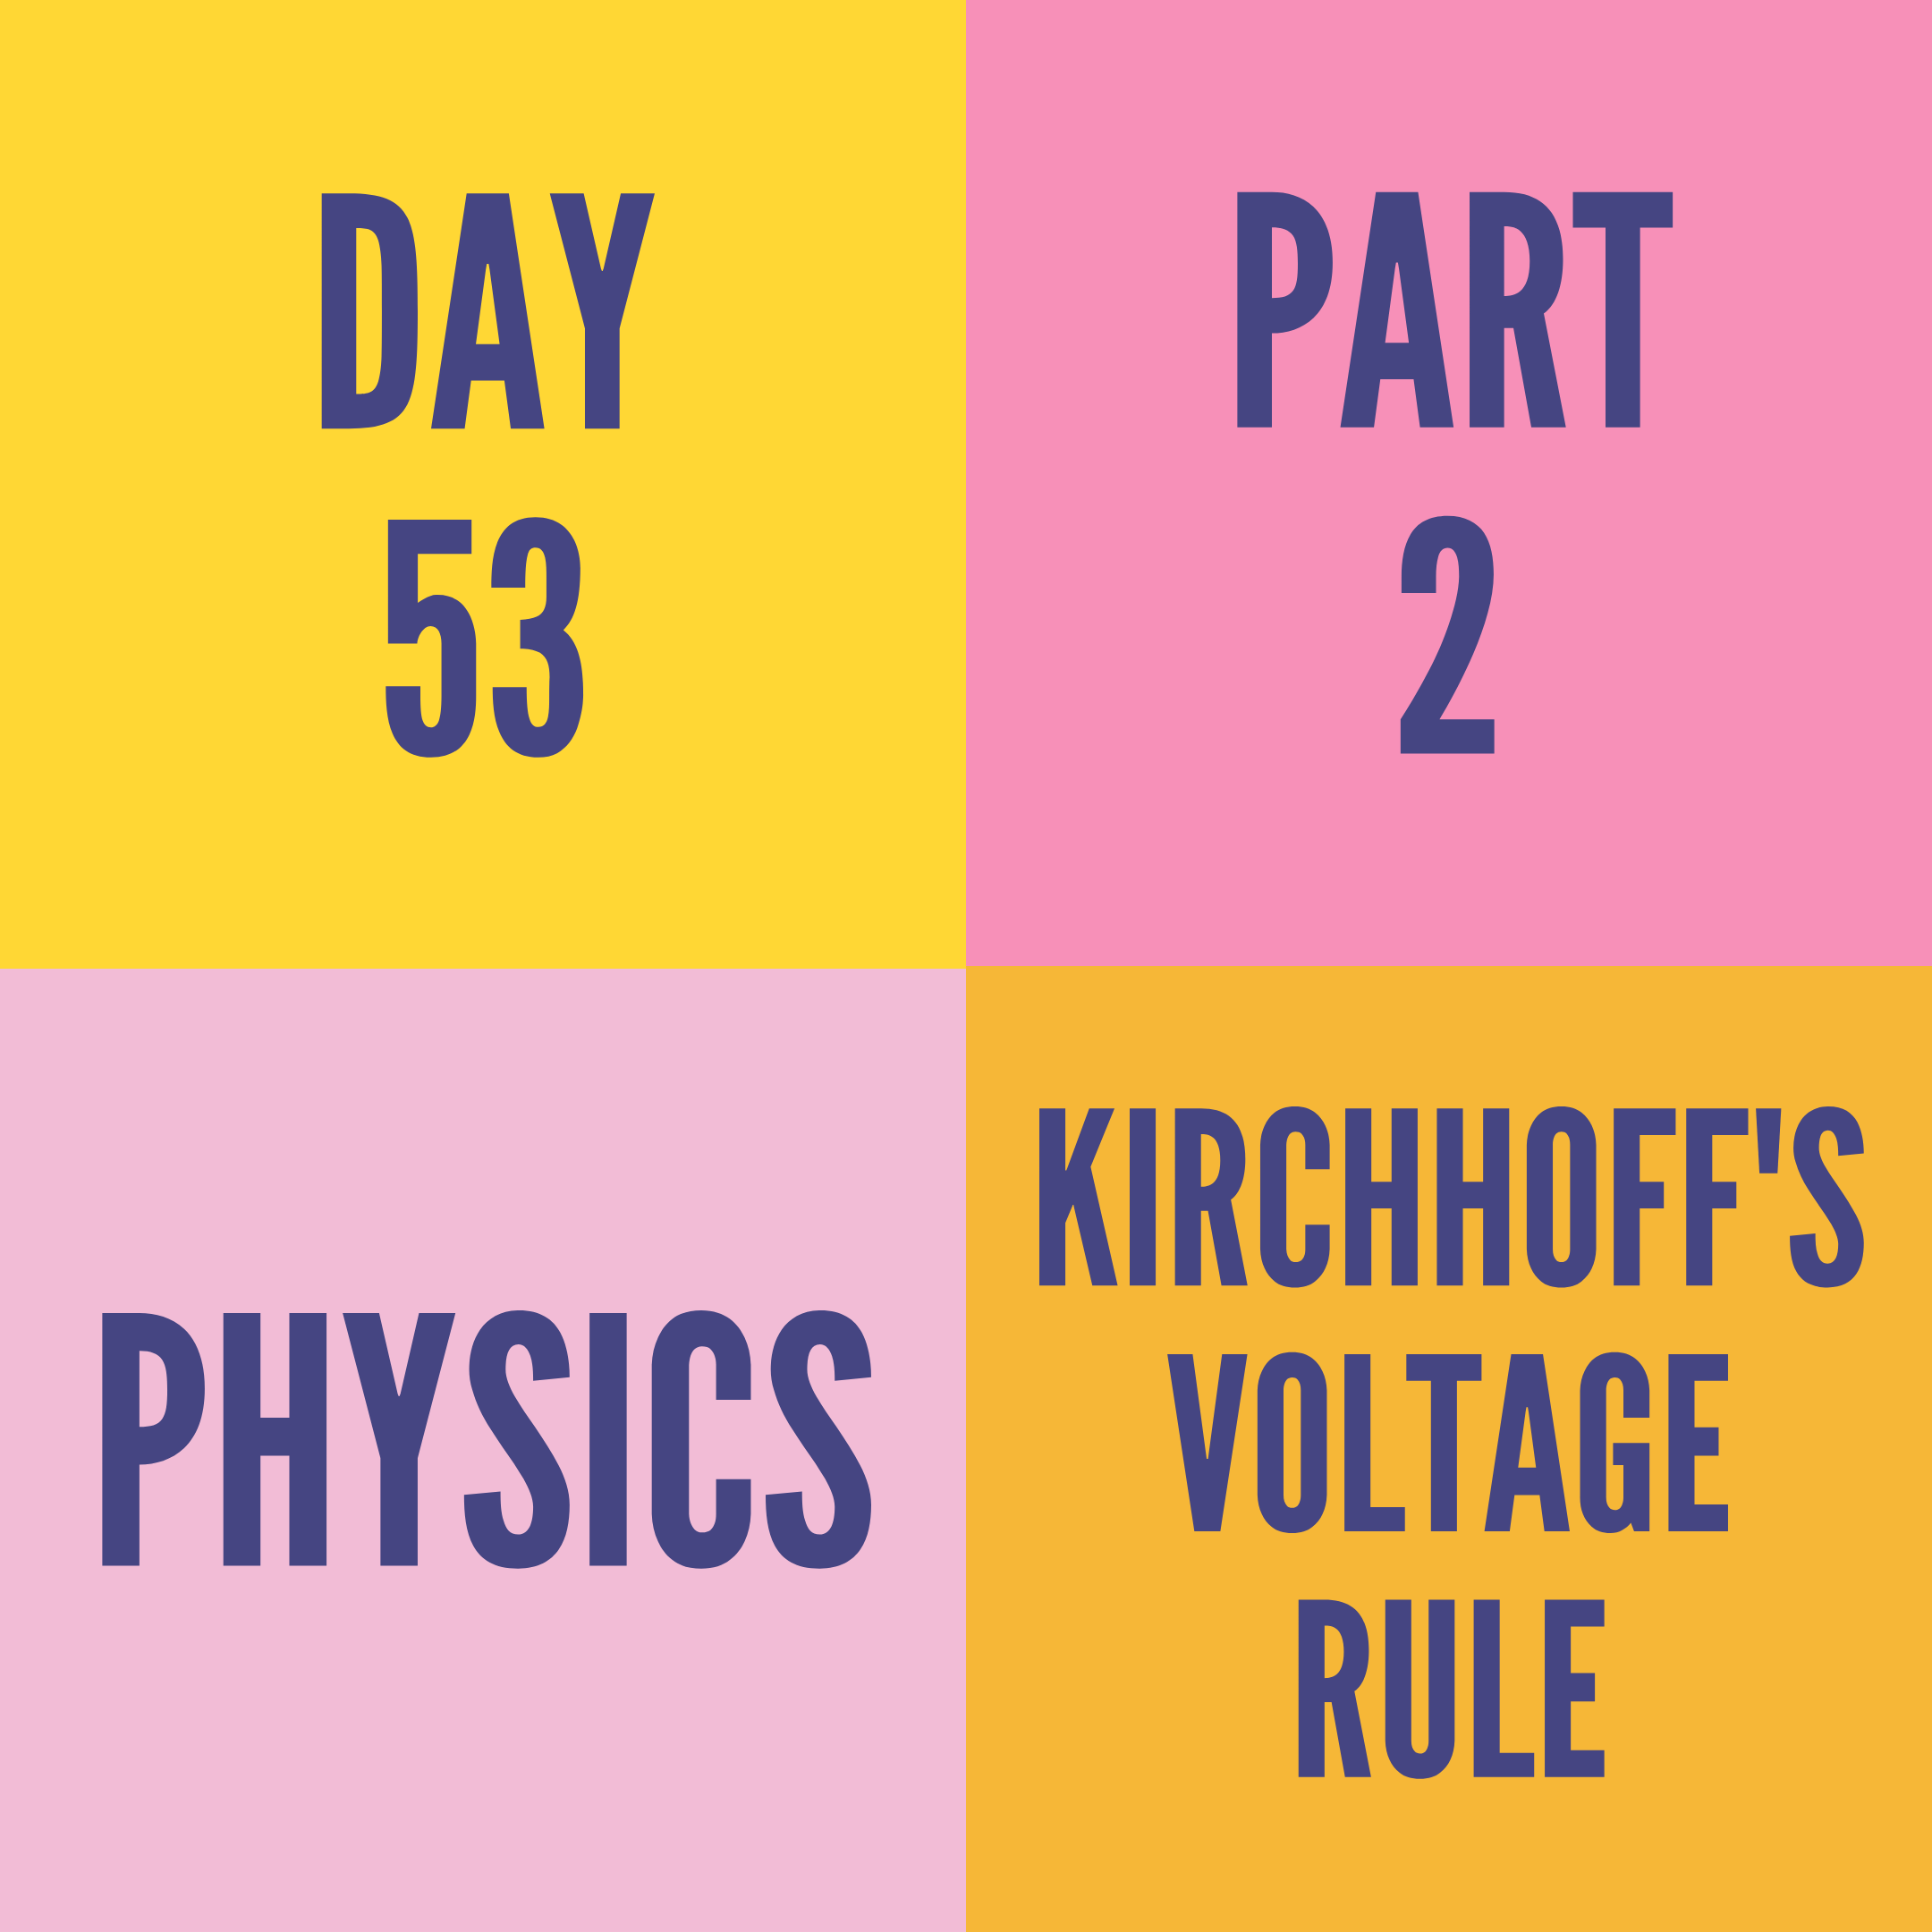 DAY-53 PART-2  KIRCHHOFF'S VOLTAGE RULE